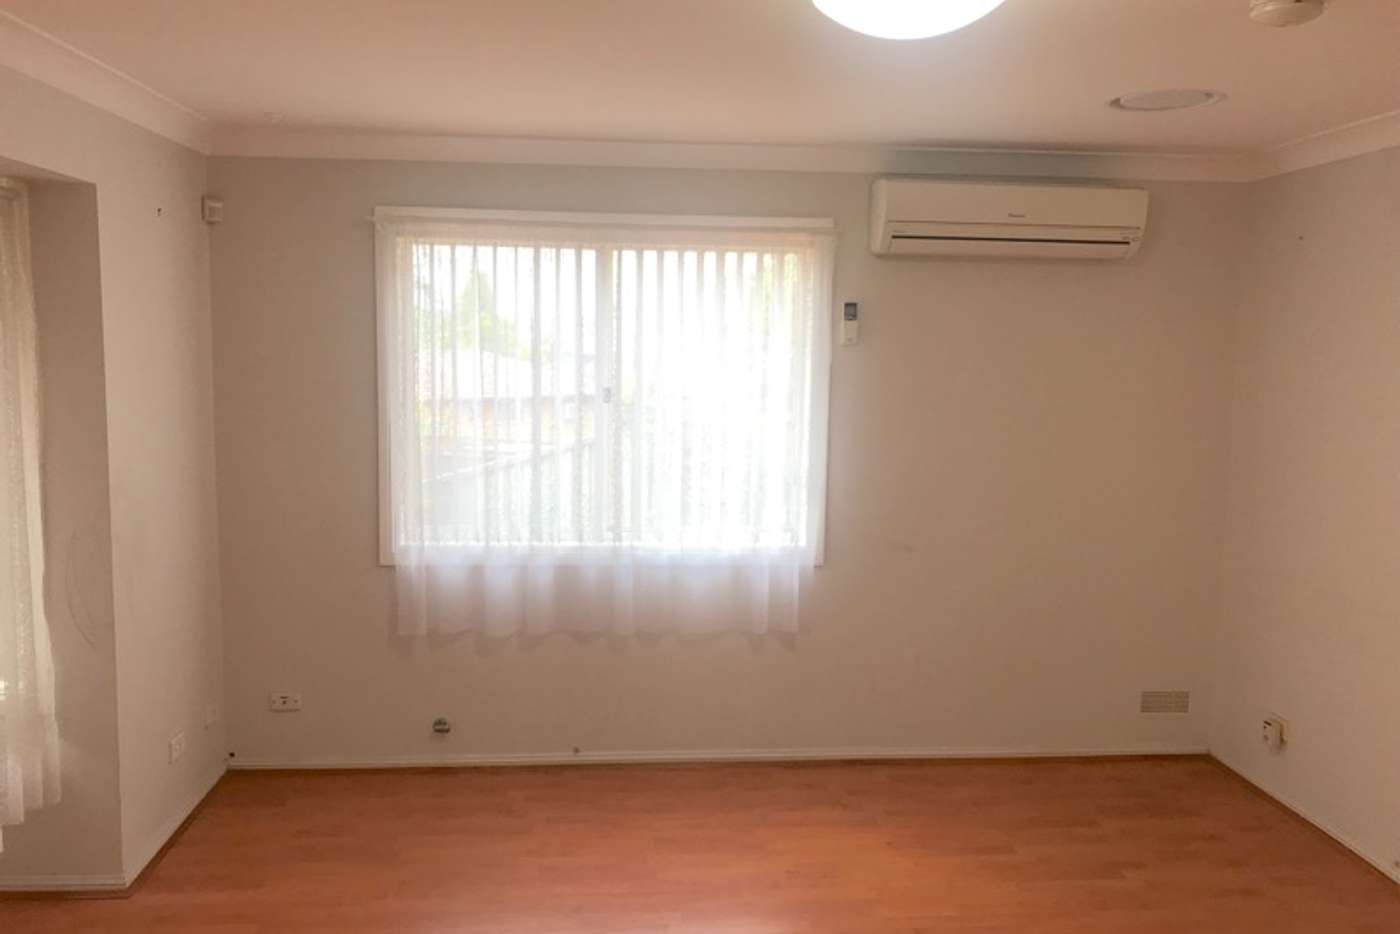 Seventh view of Homely townhouse listing, 4 Obi Lane, Toongabbie NSW 2146